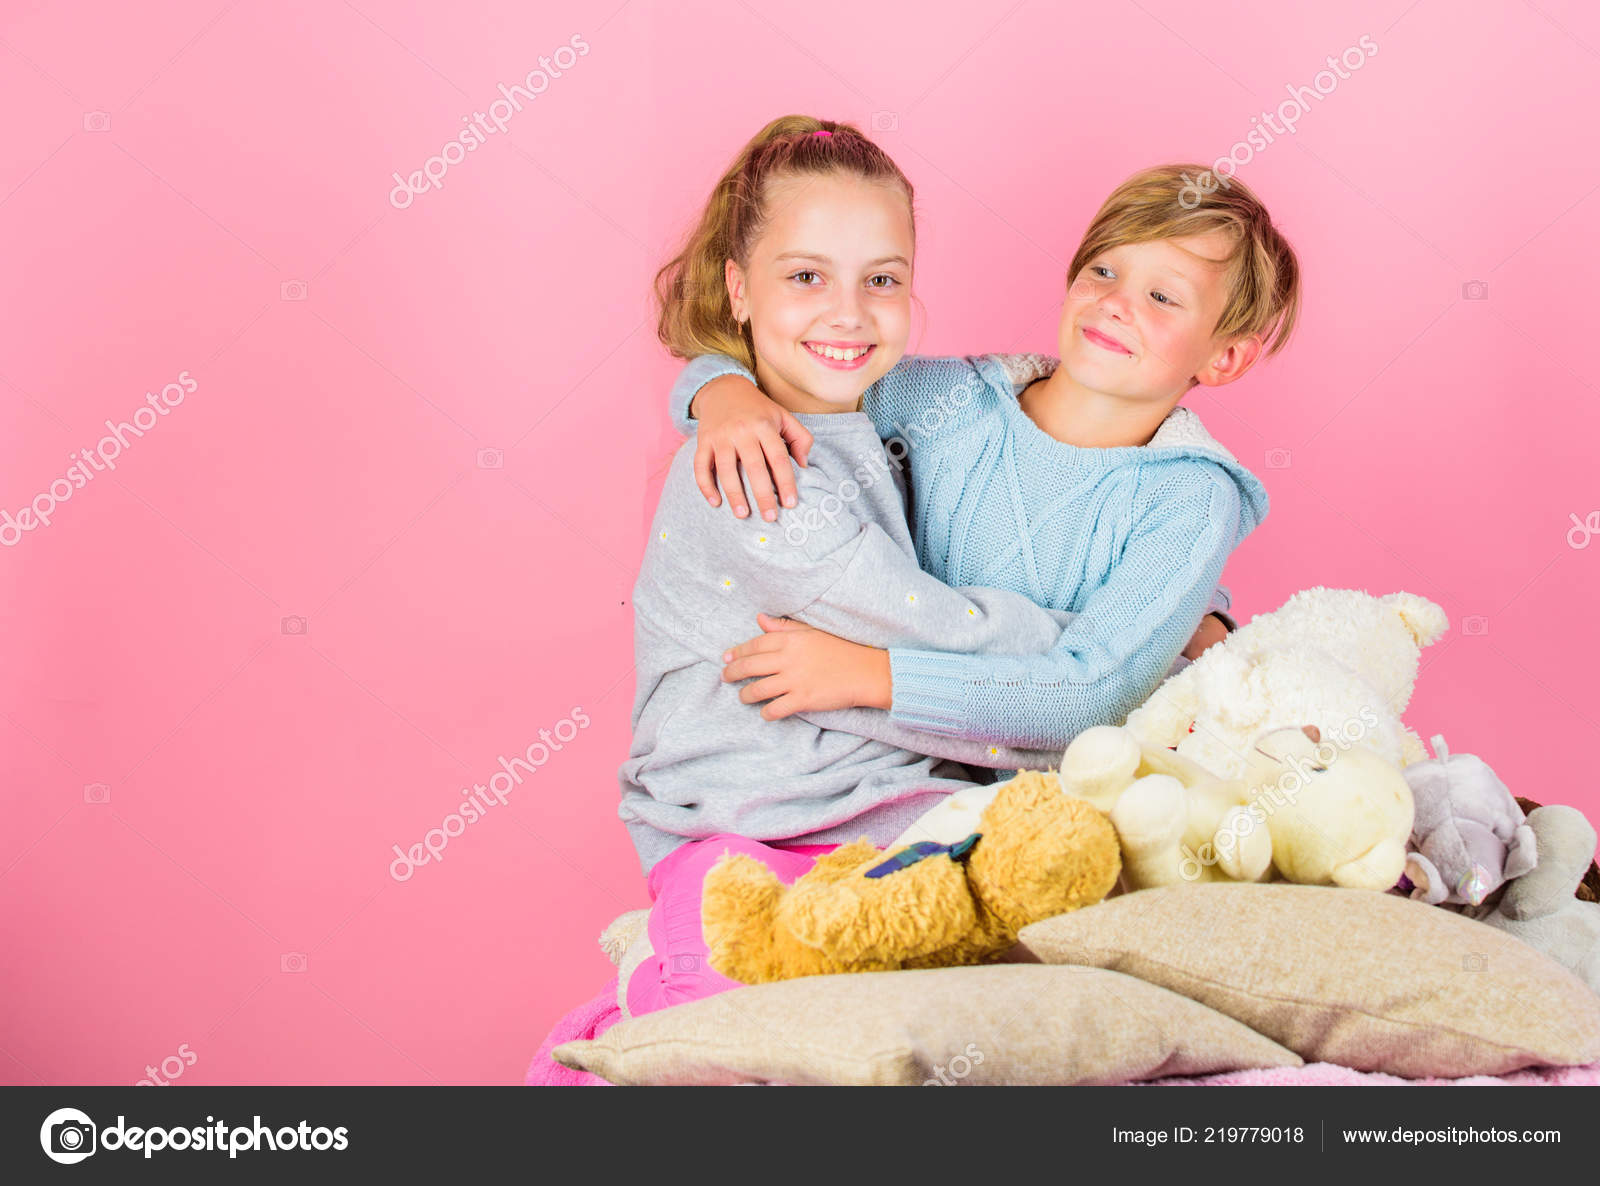 Friendship concept best friends brother and sister kids siblings friends hug pink background children friends near